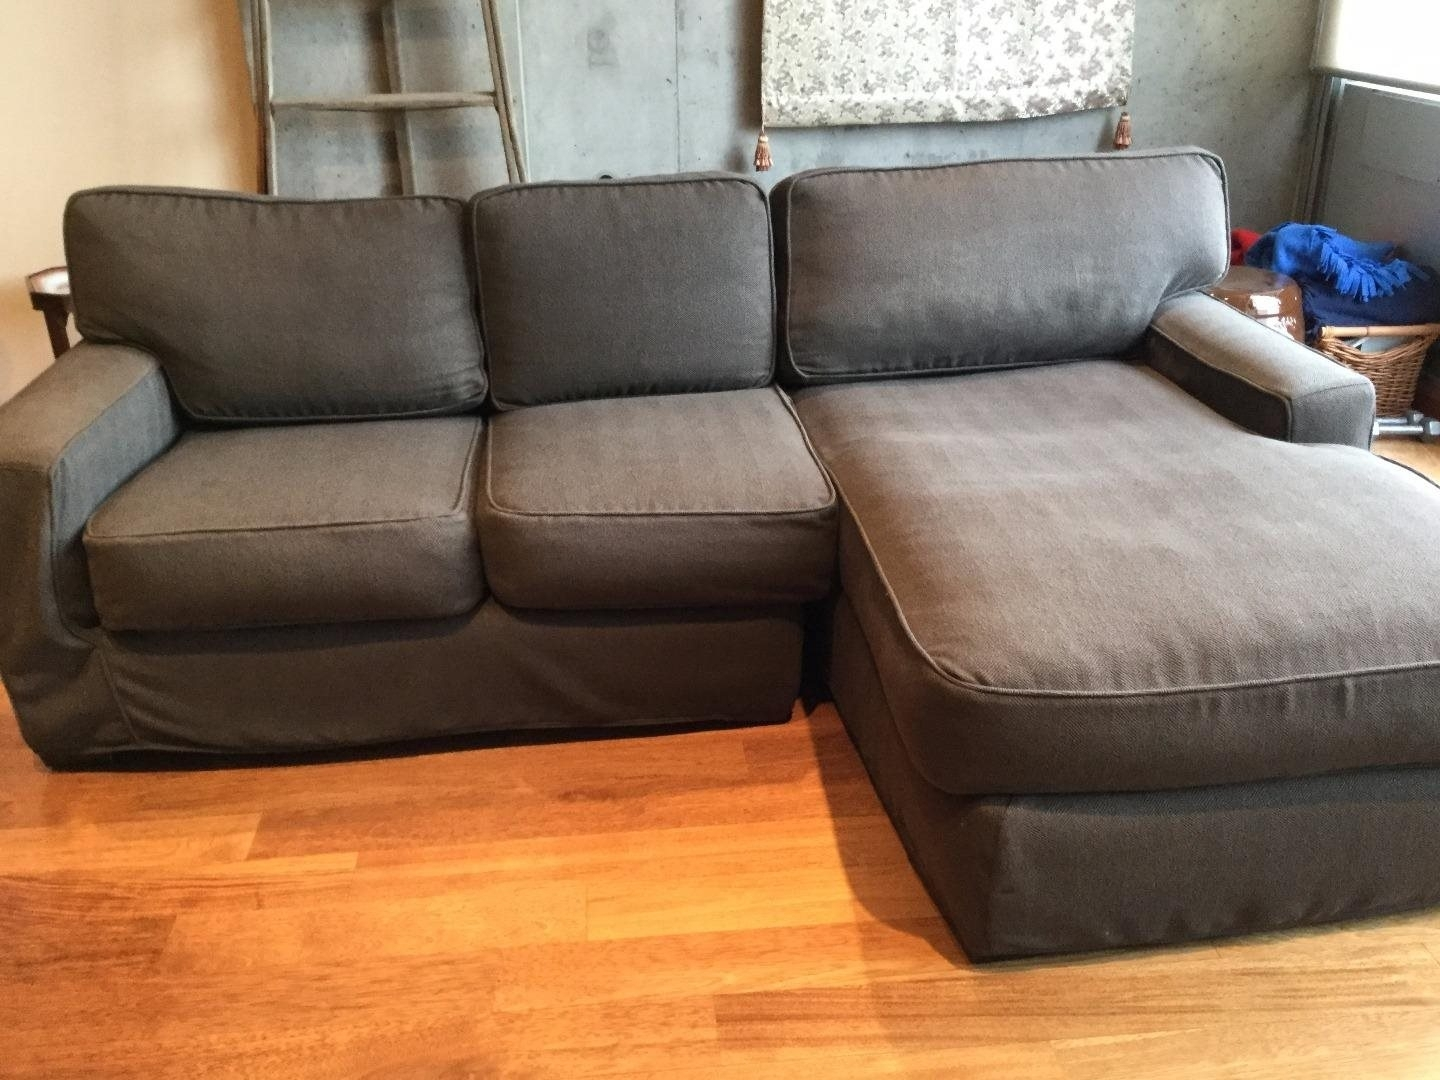 Quatrine Upholstered Sectional Sofa: For Sale In San Francisco, Ca Within Quatrine Sectional Sofas (Image 9 of 10)